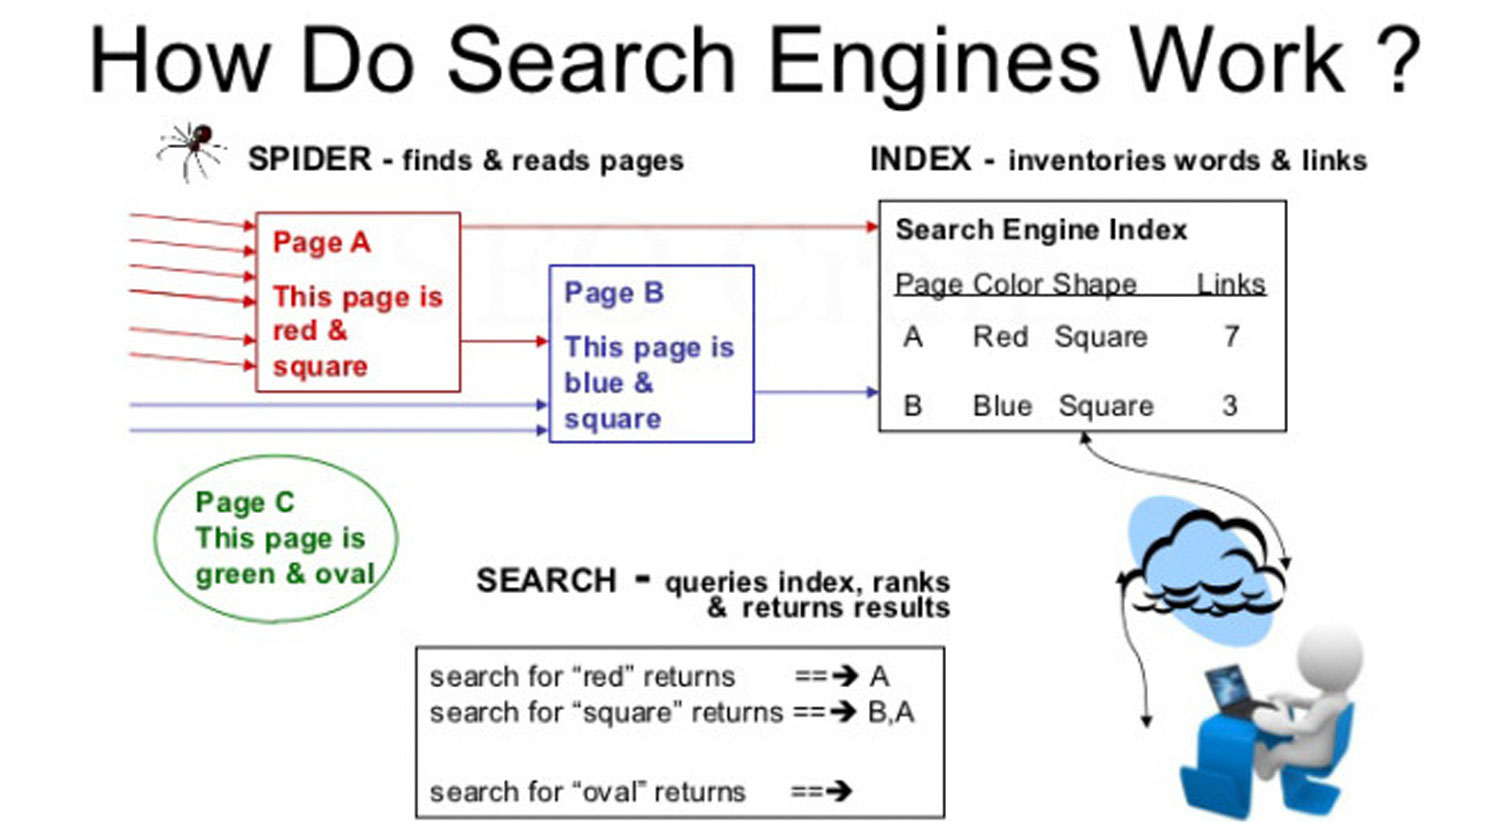 How do Search Engines Work - Parangat